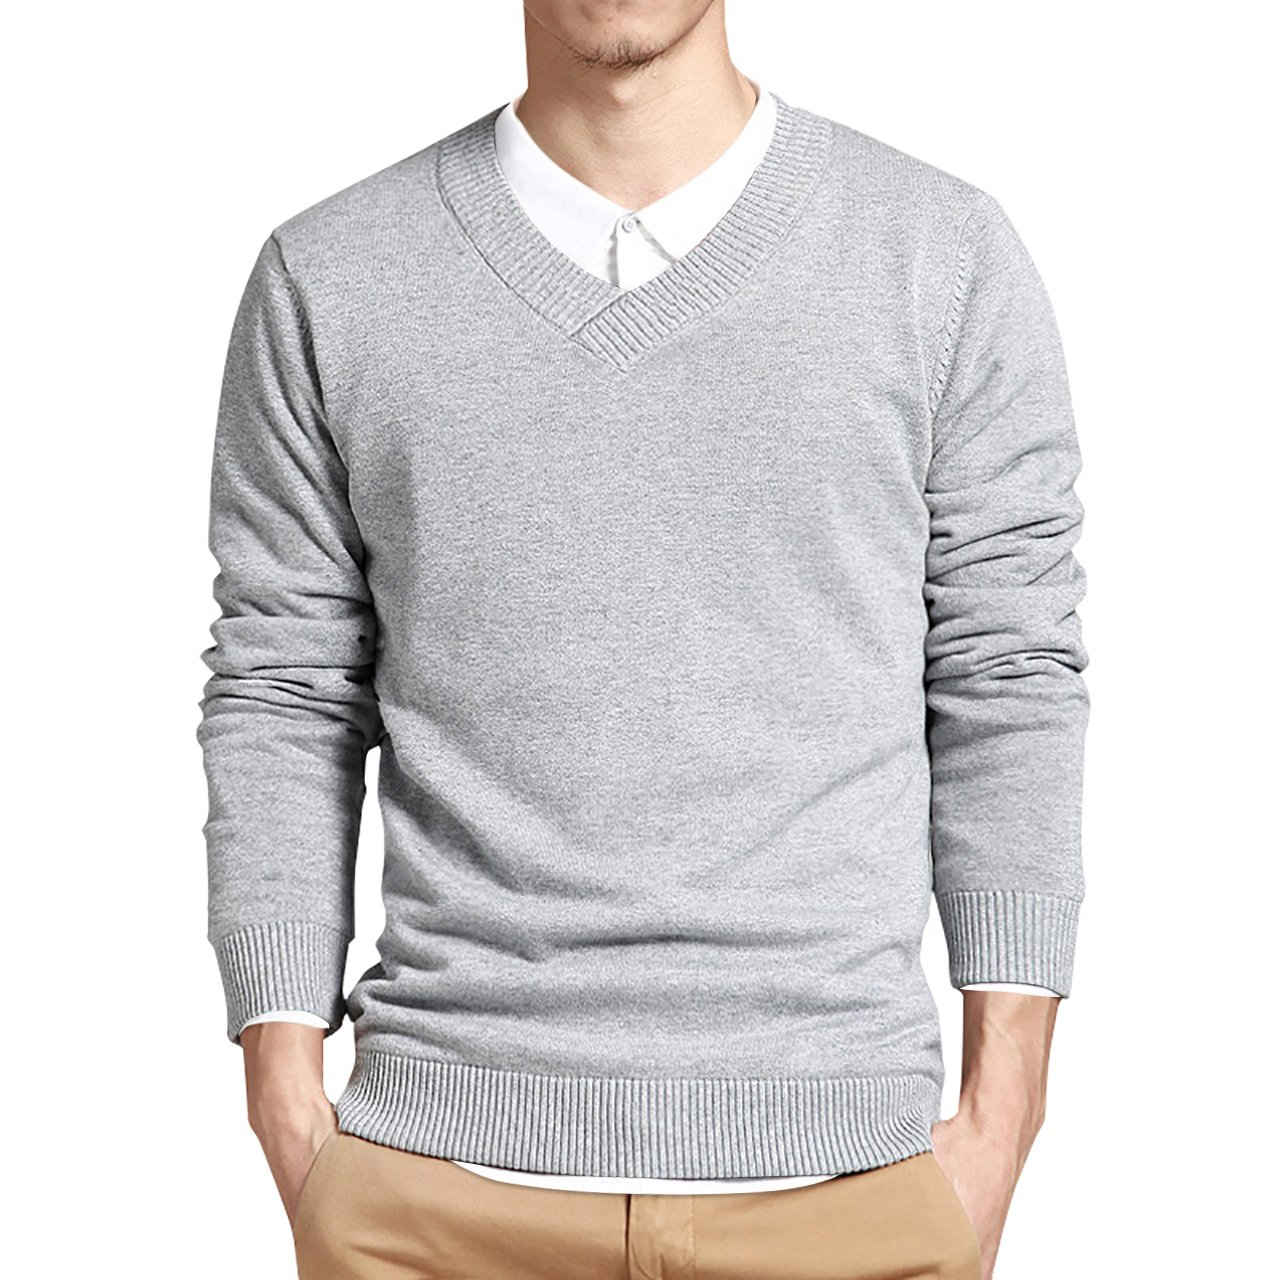 LTIFONE Mens Slim Comfortably Knitted Long Sleeve V-Neck Sweaters (Grey,S)